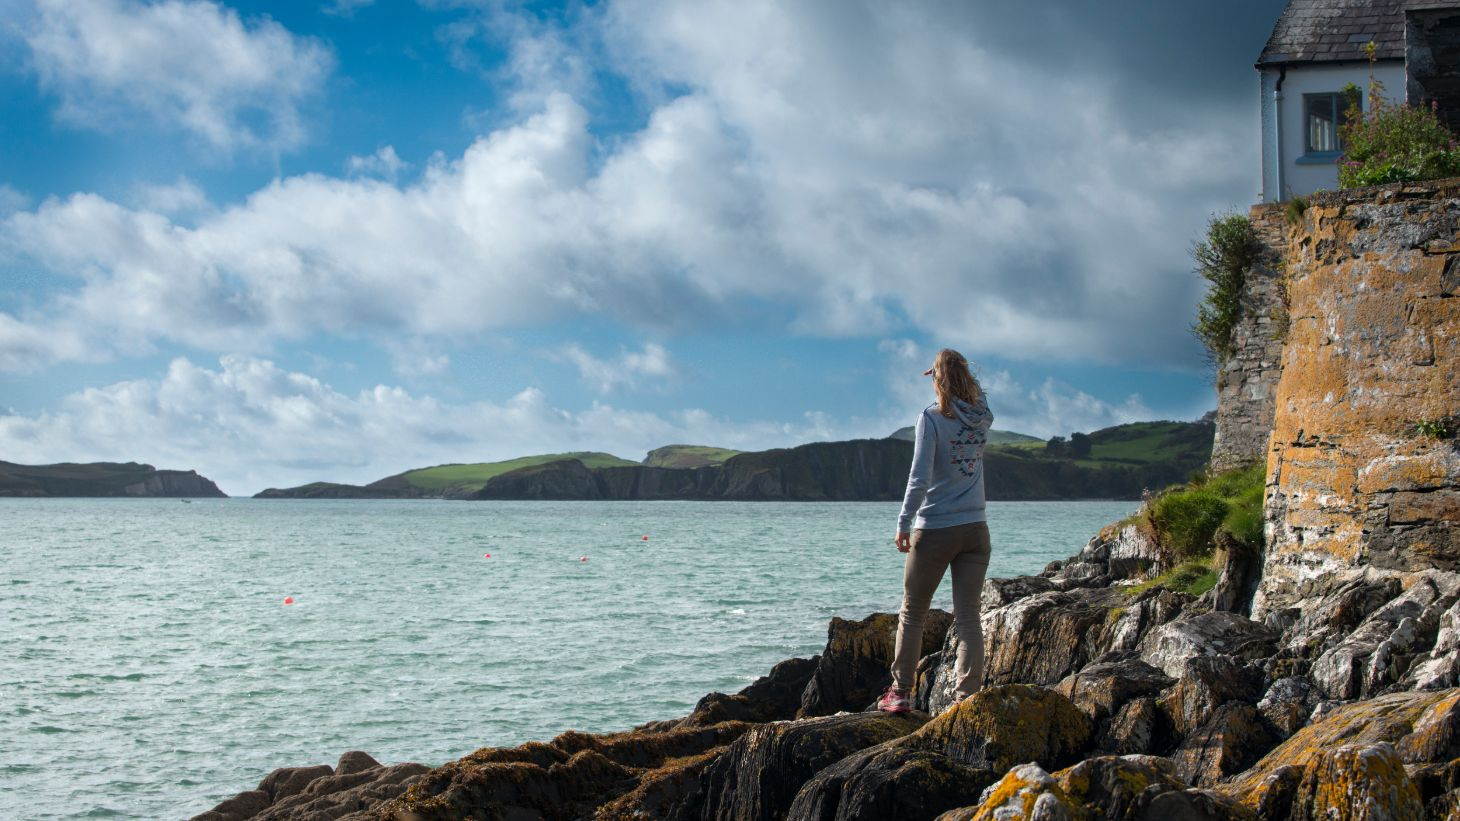 Check out the stunning views at Castletownshend Harbour.